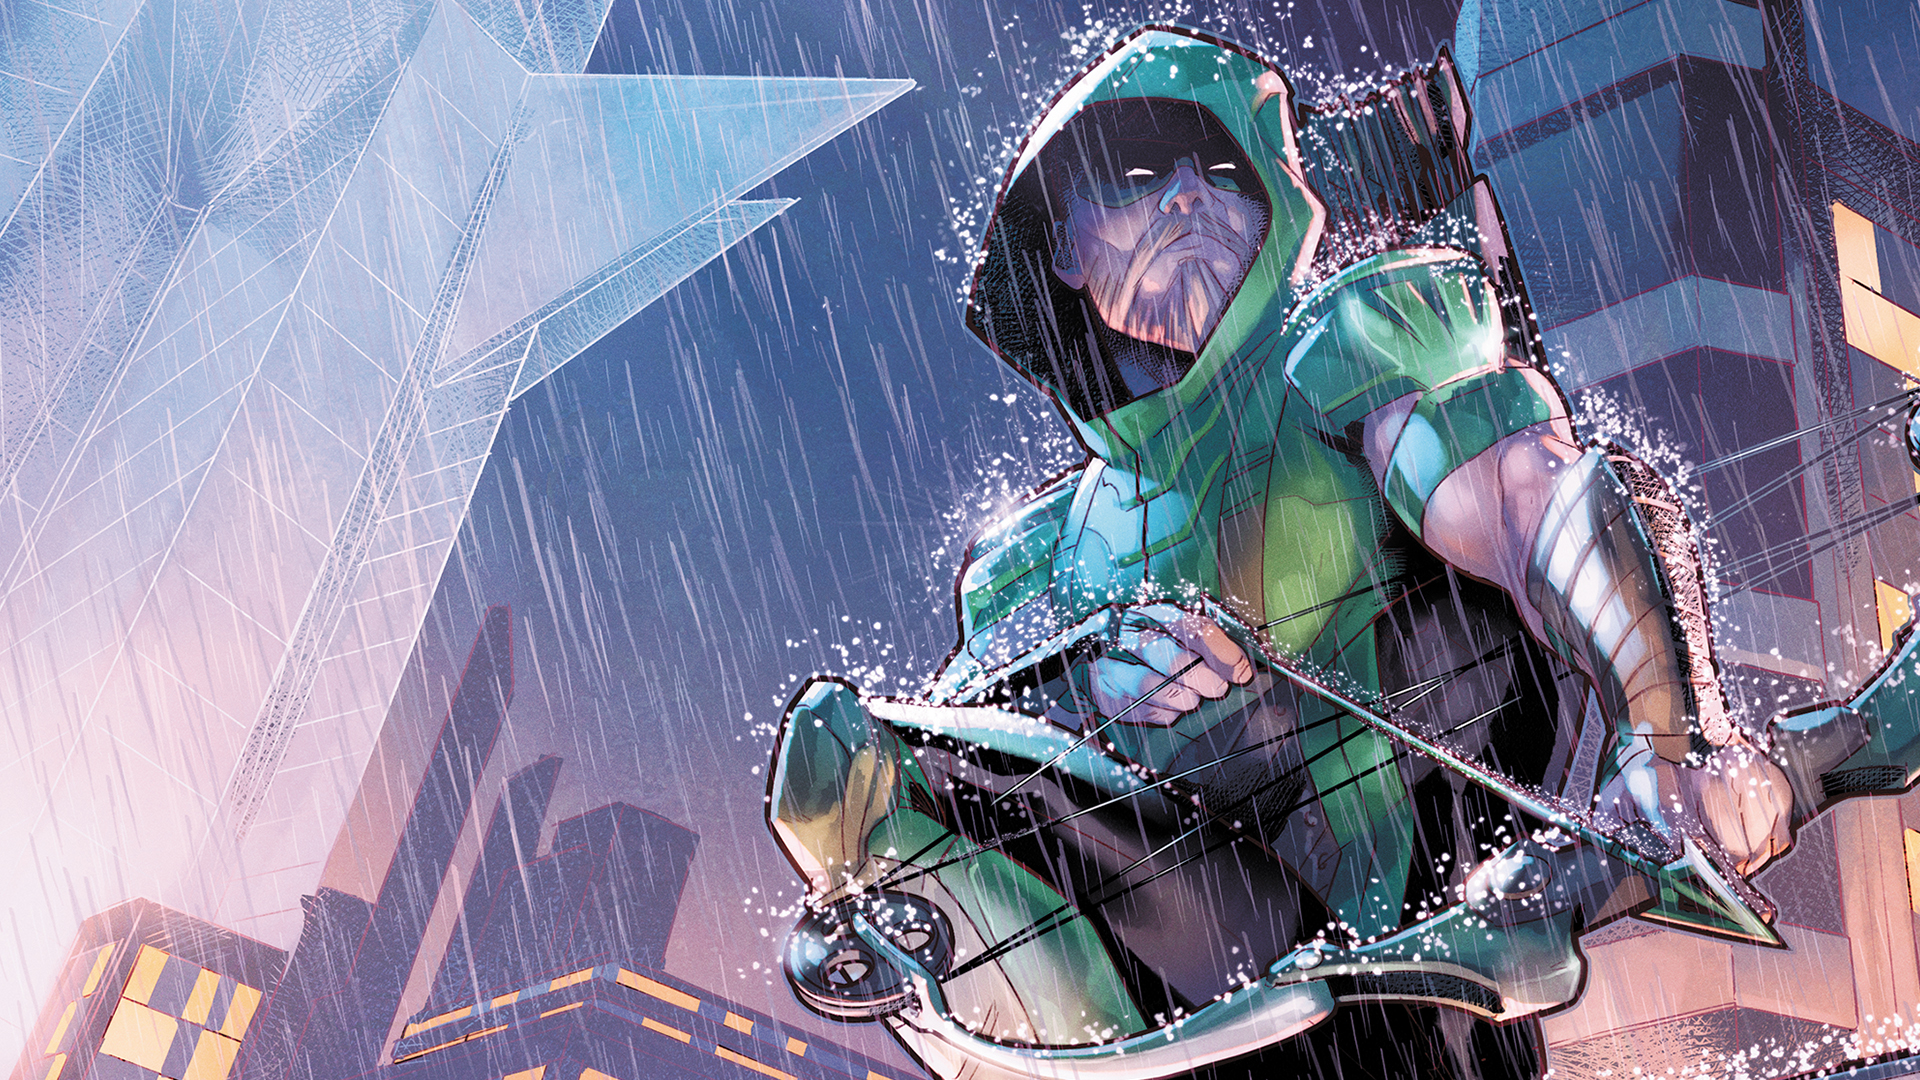 green arrow full hd wallpaper and background image | 1920x1080 | id